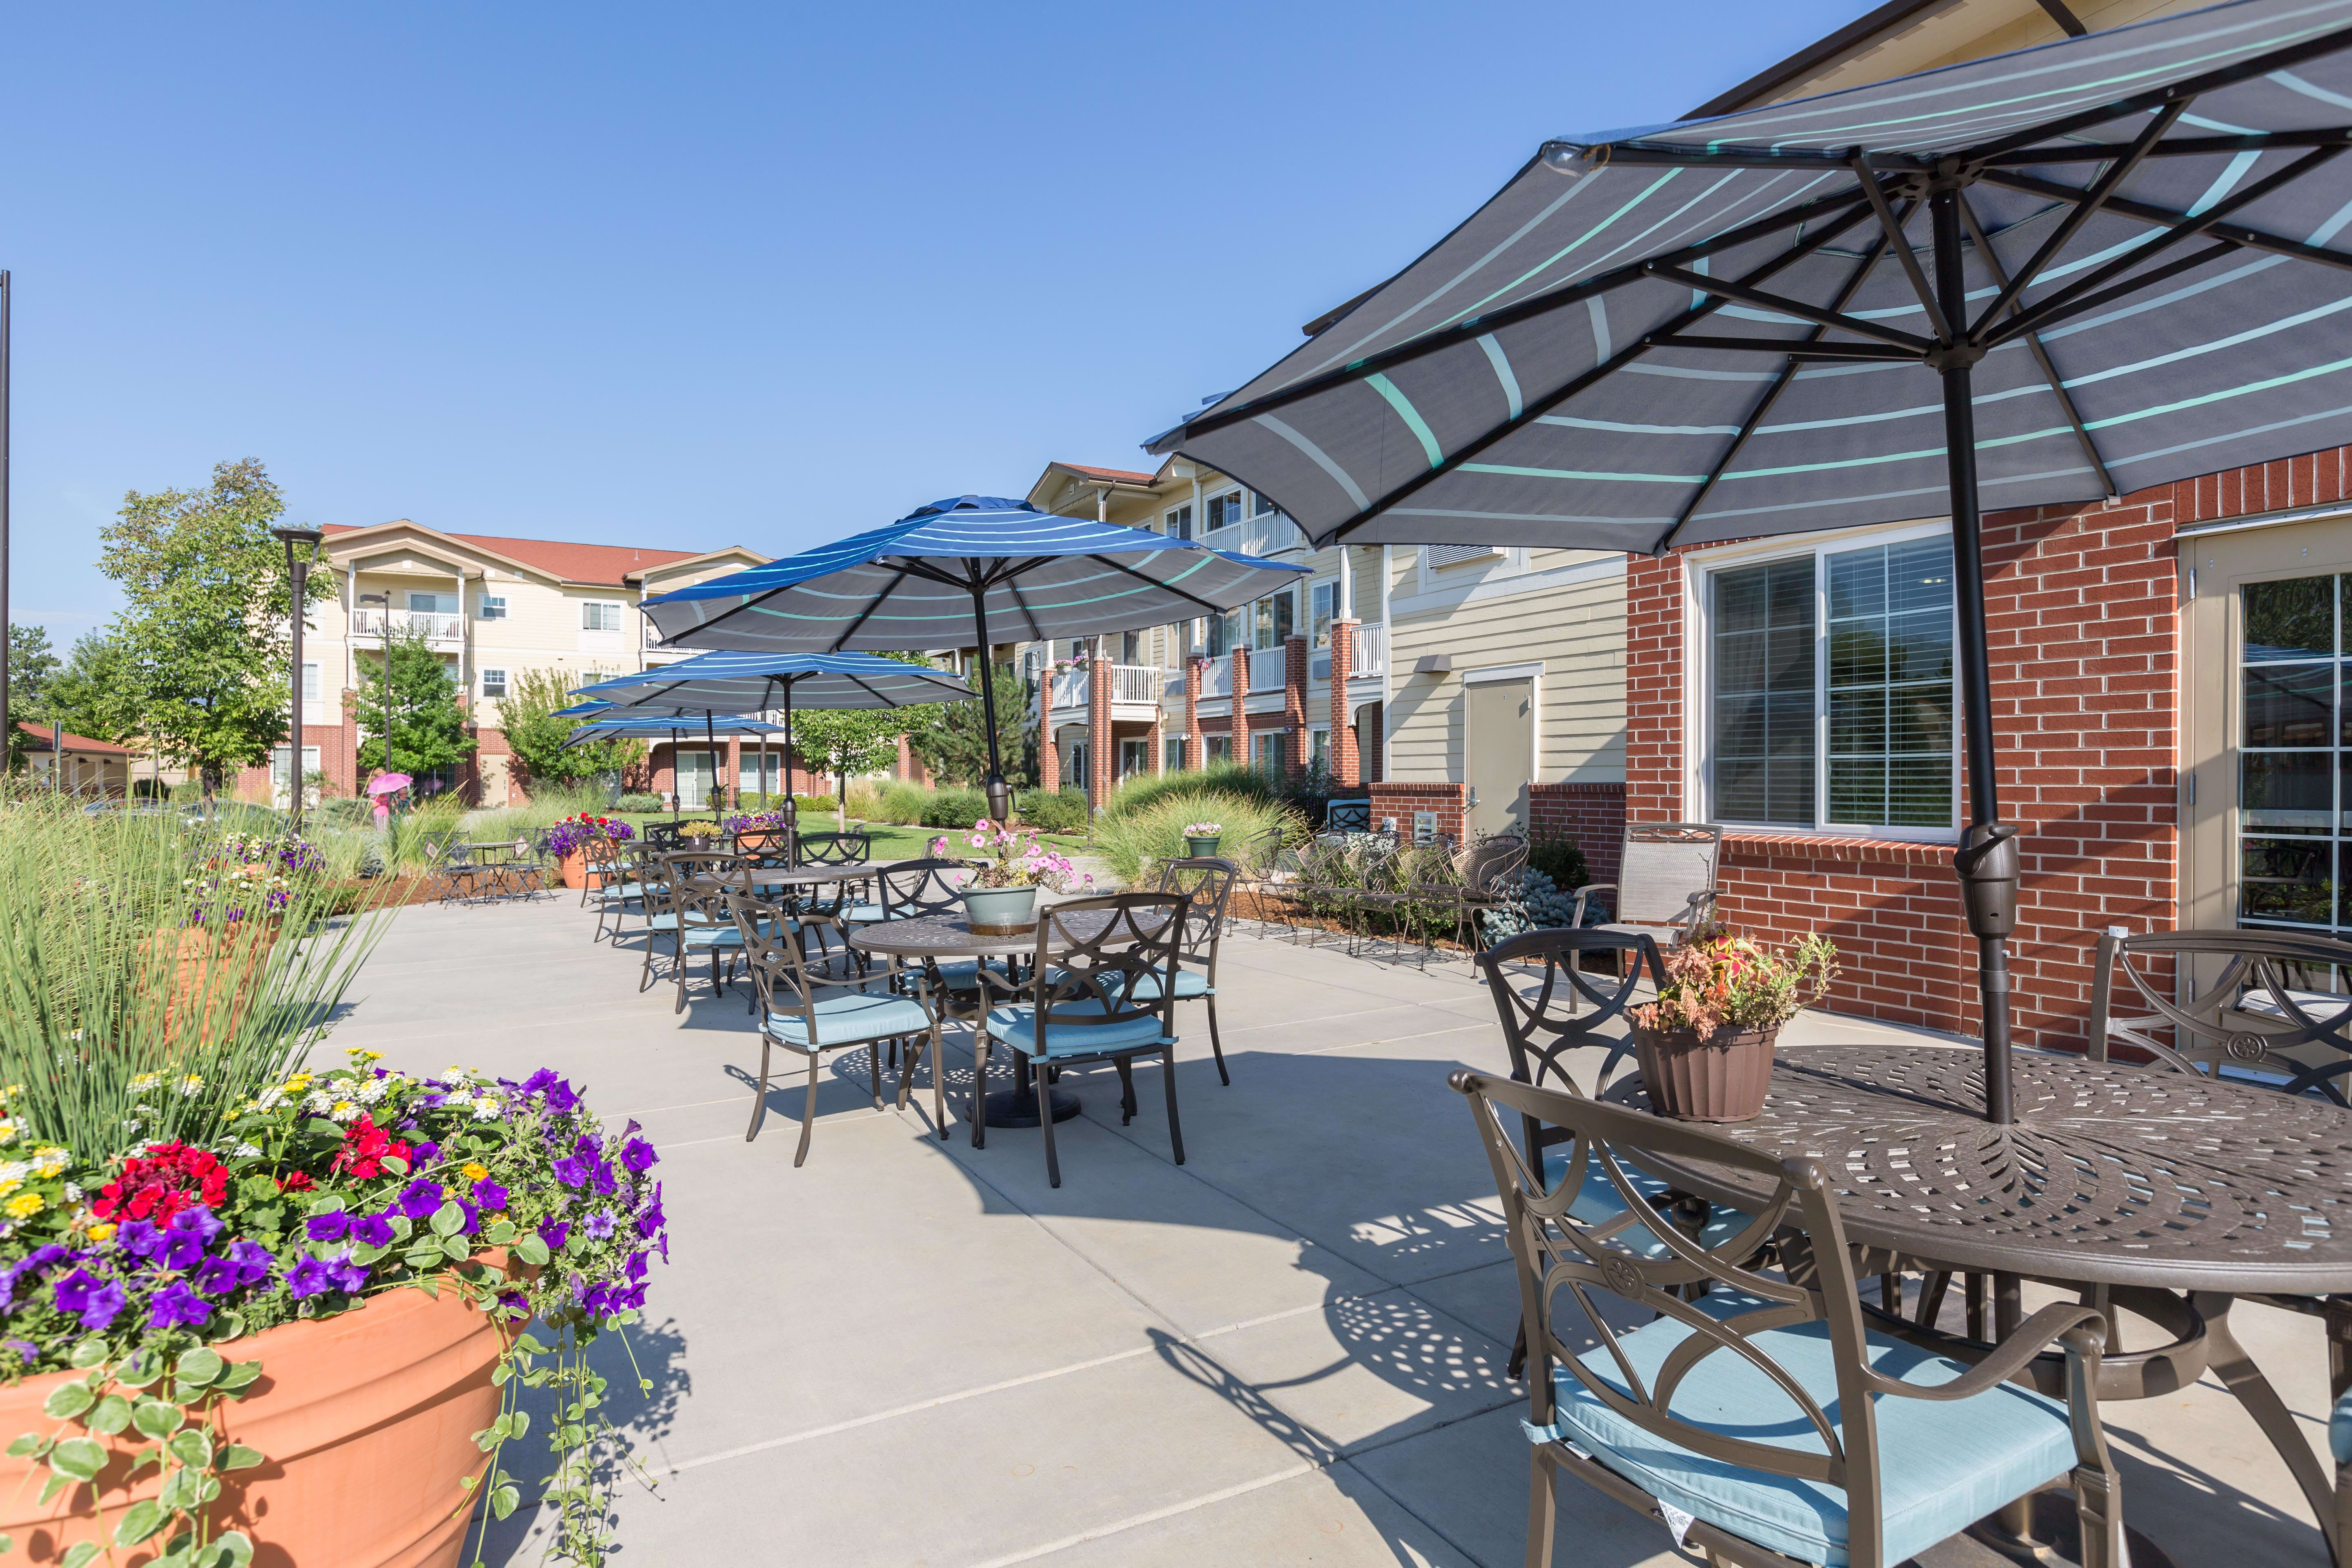 Back patio area at Lakeview Senior Living